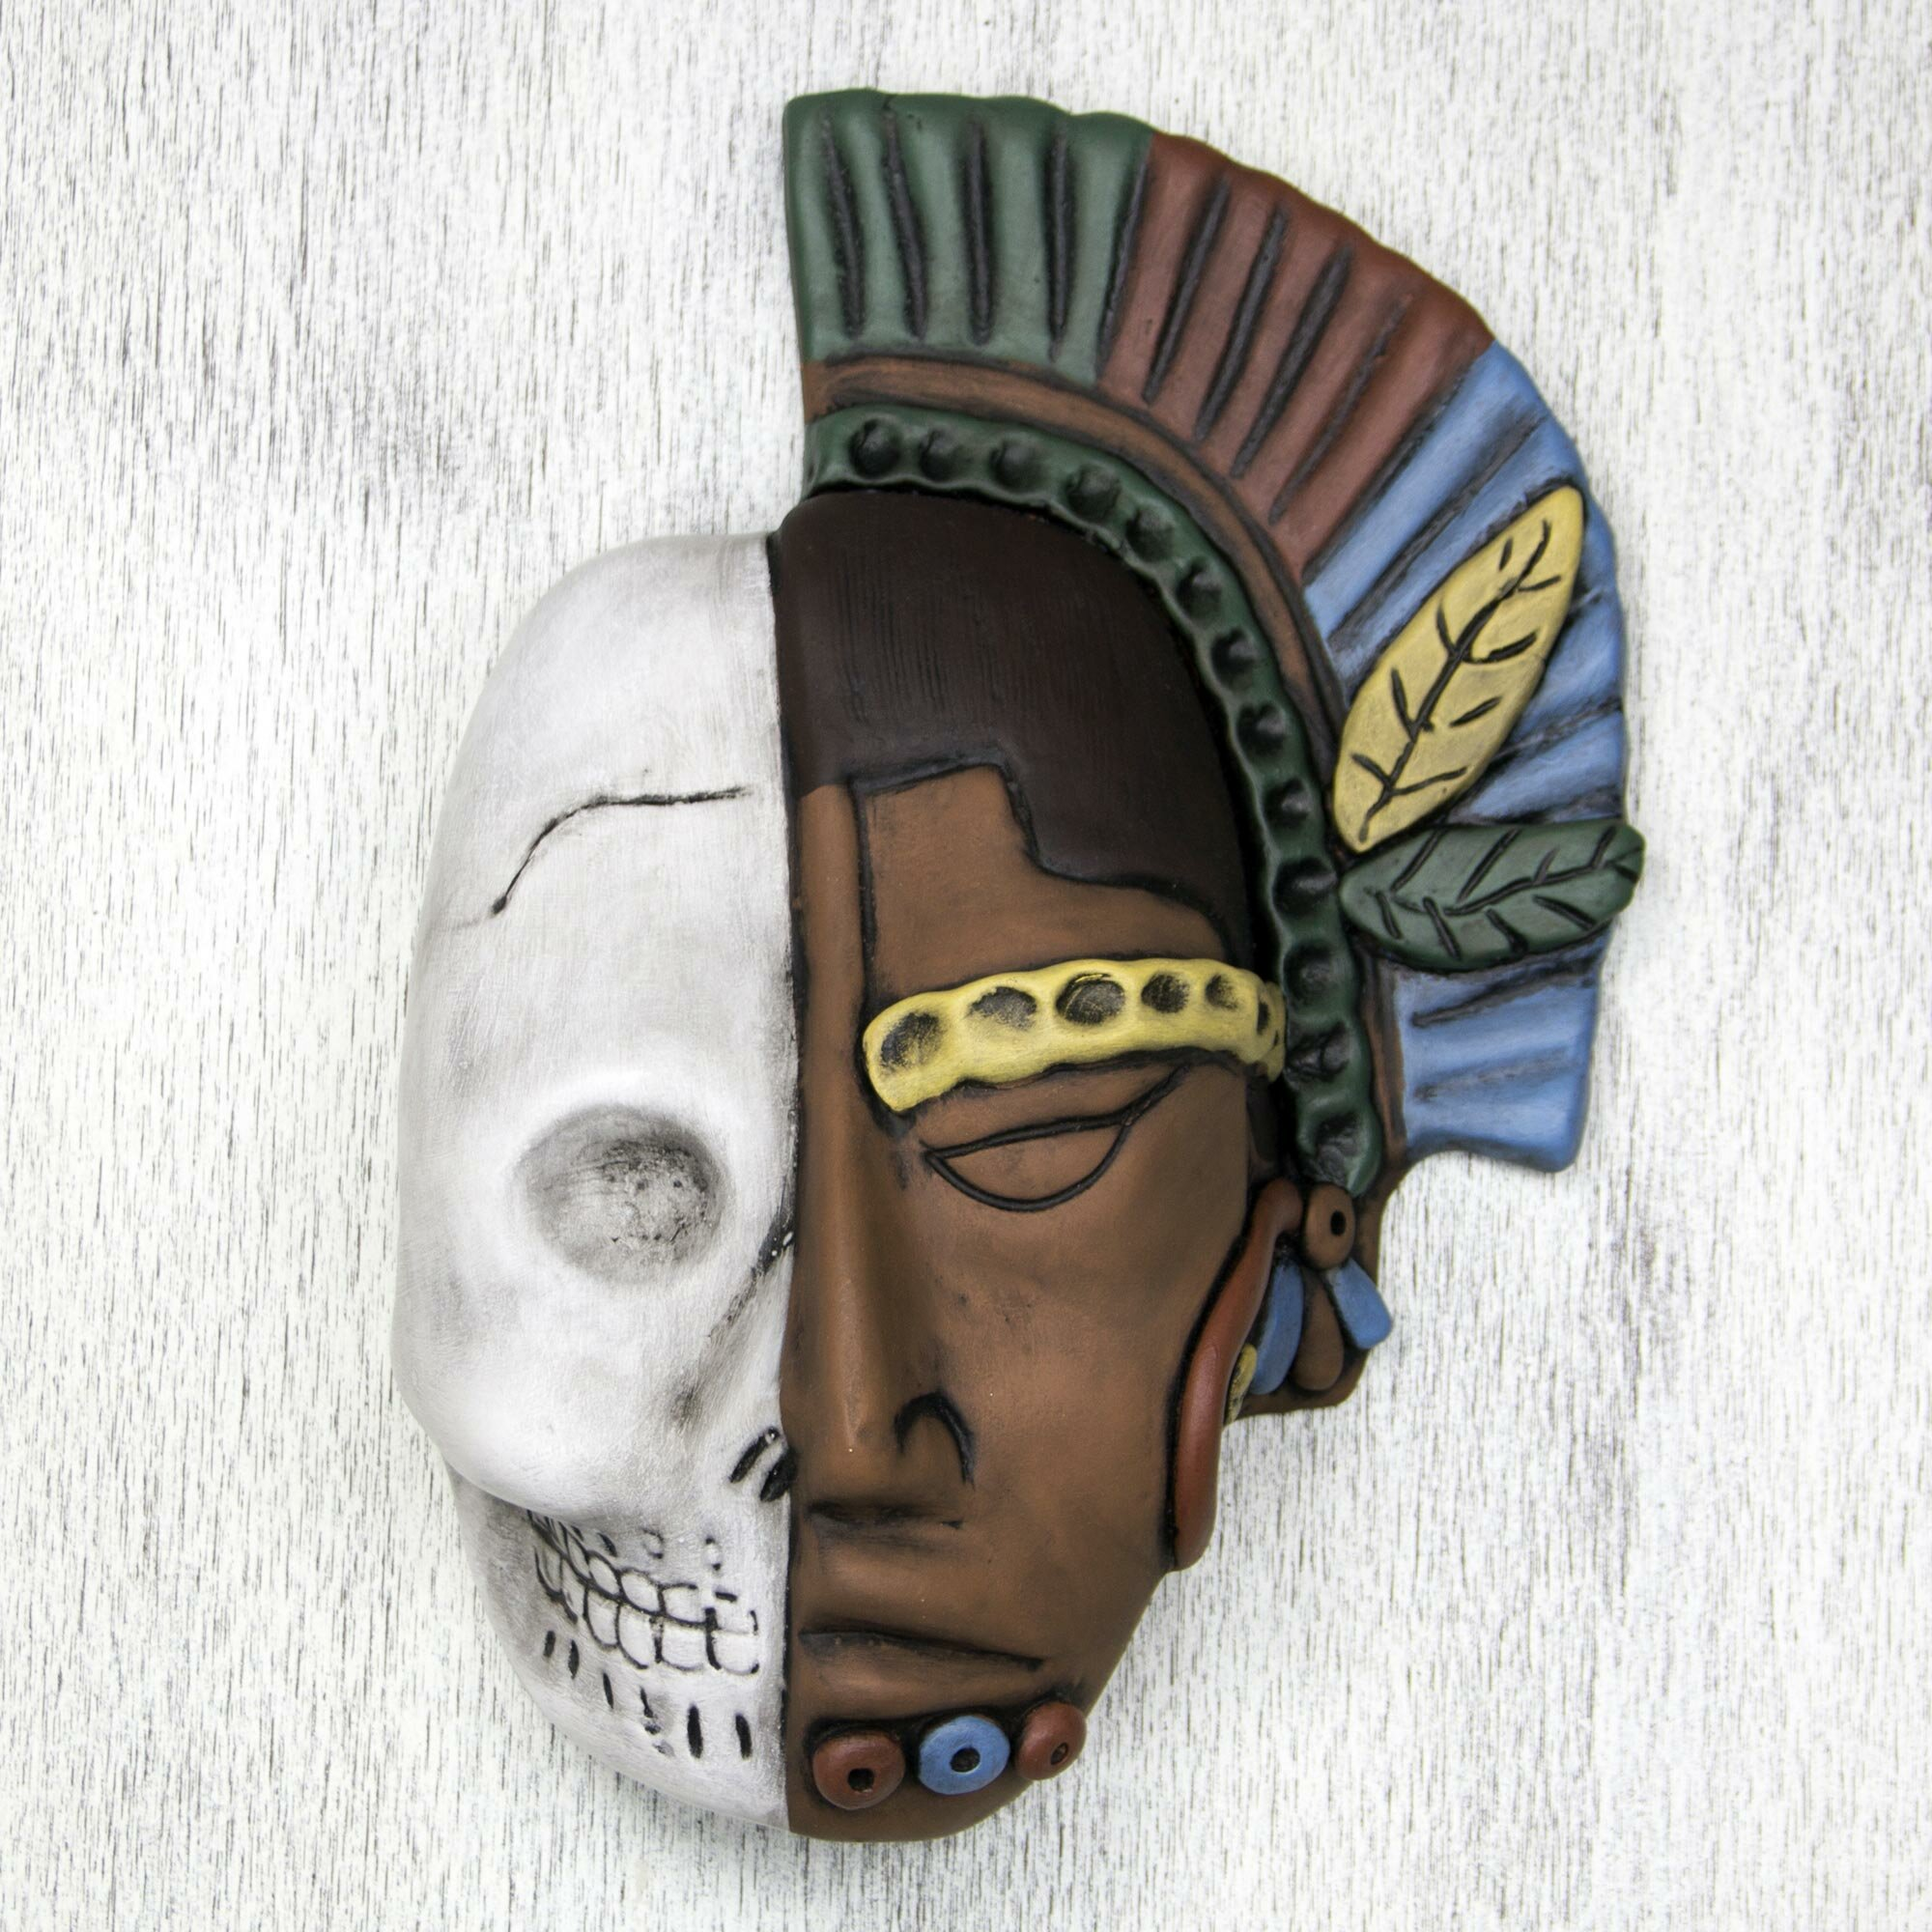 Wall Decoration With Masks : Novica life and ceramic mask wall d?cor wayfair